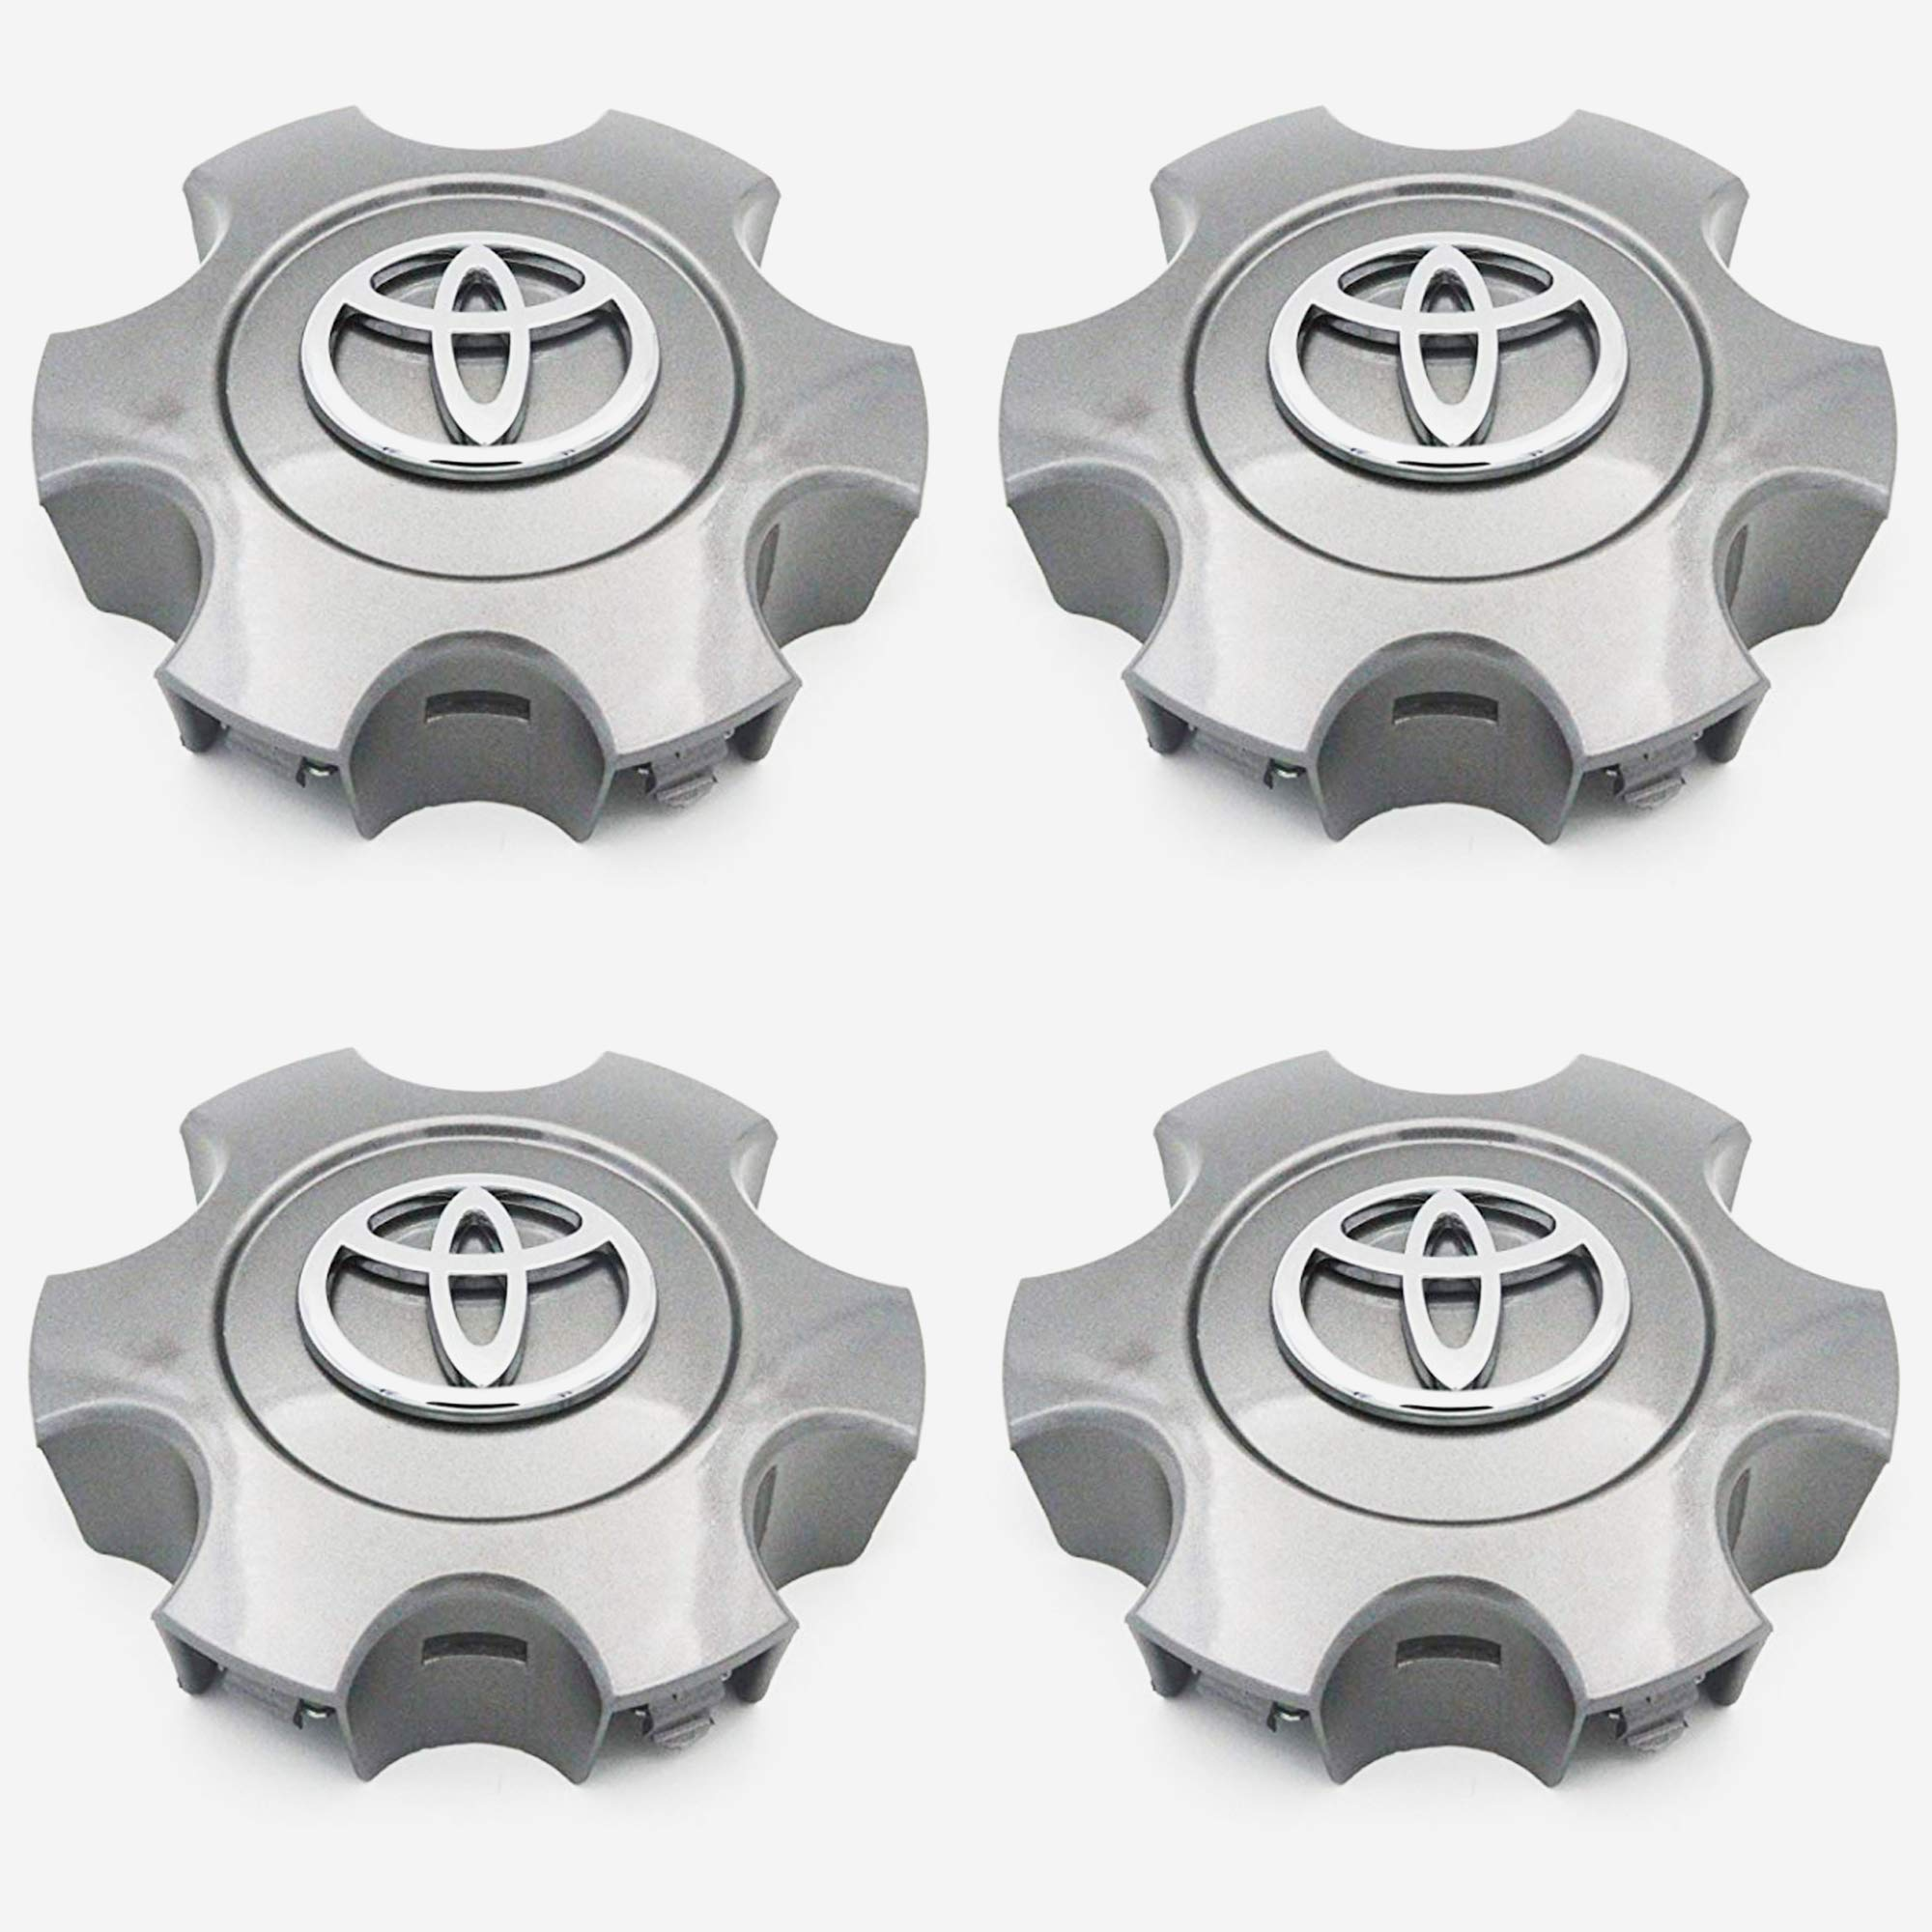 FCT Replacment 2003-2006 Tundra 03-07 Sequoia Wheel Center caps hubcaps Set of 4 by FCT